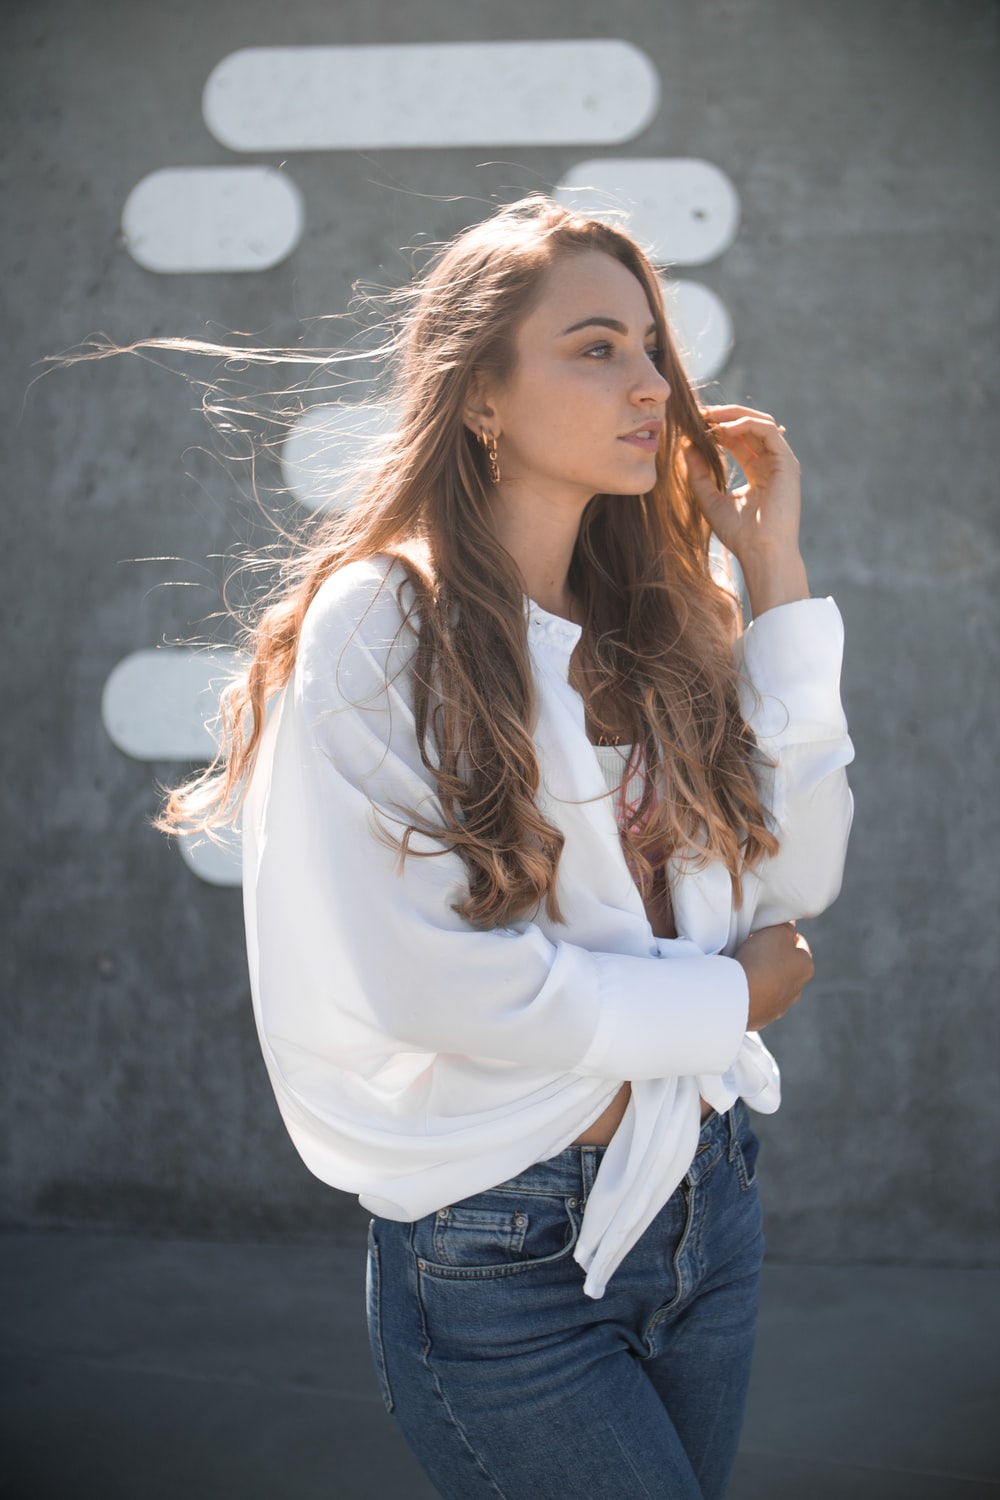 woman in white top and blue denim bottoms standing outdoors